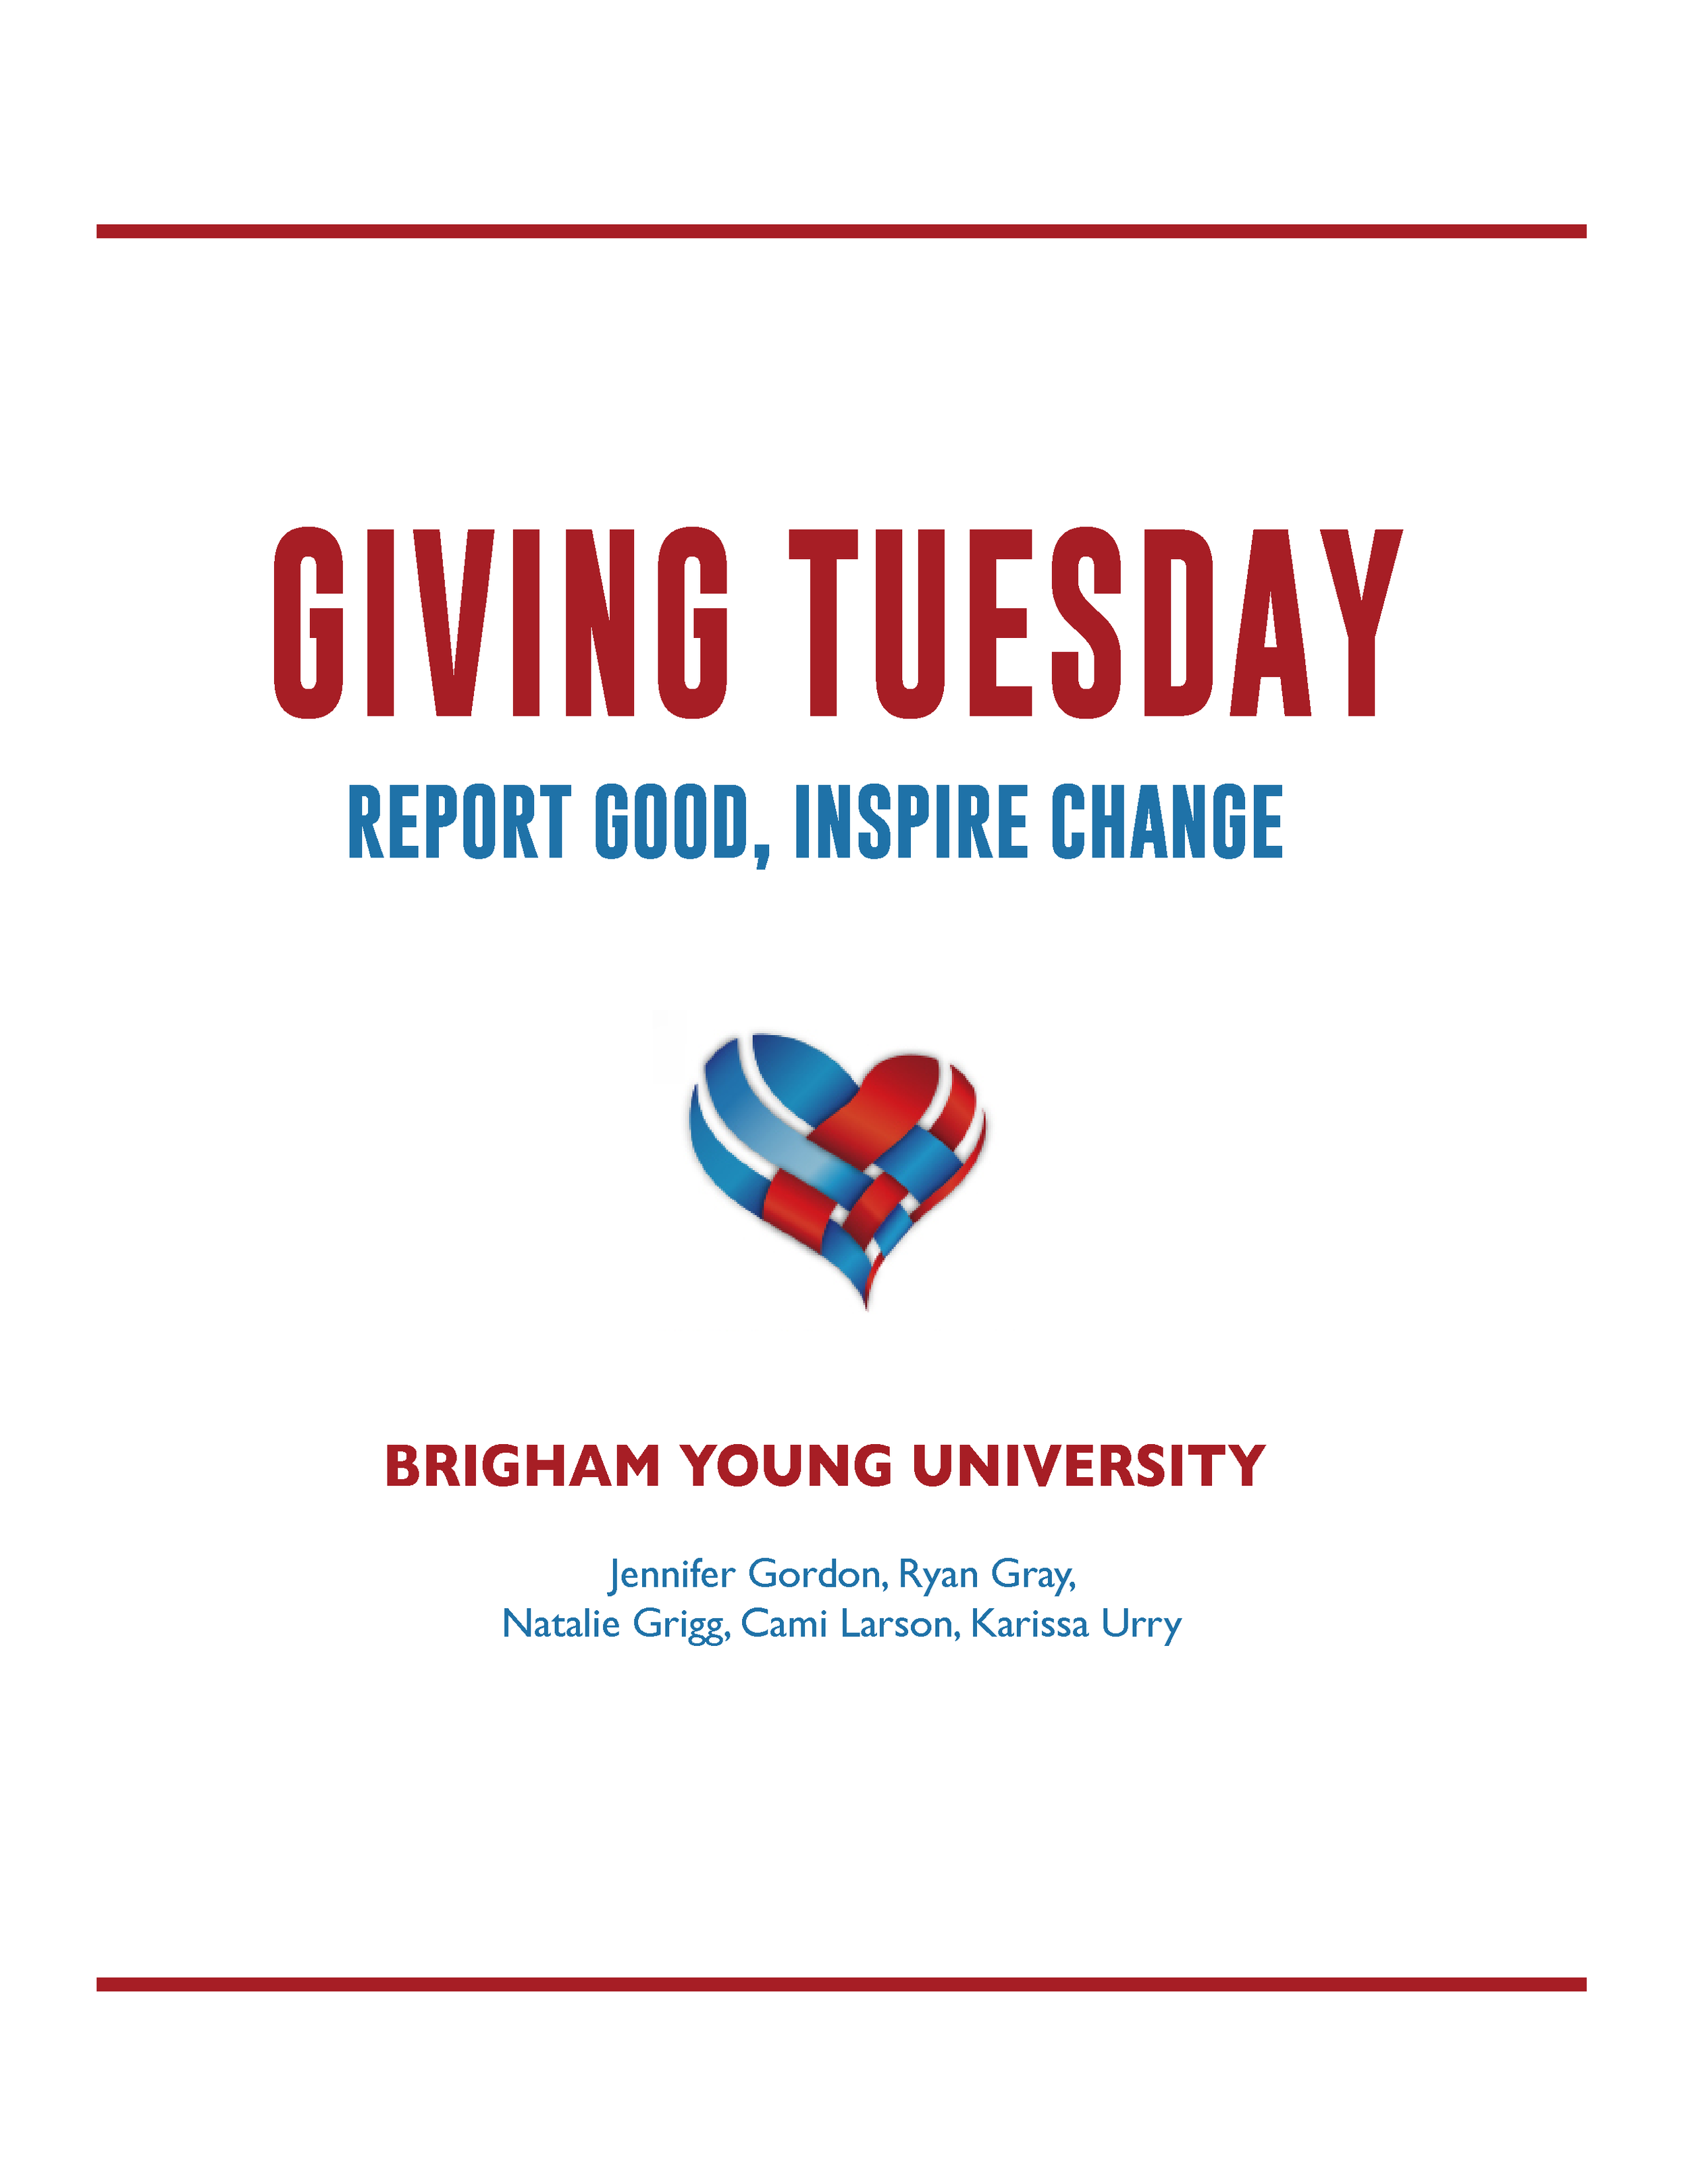 #GivingTuesday Pitch Book 01.png